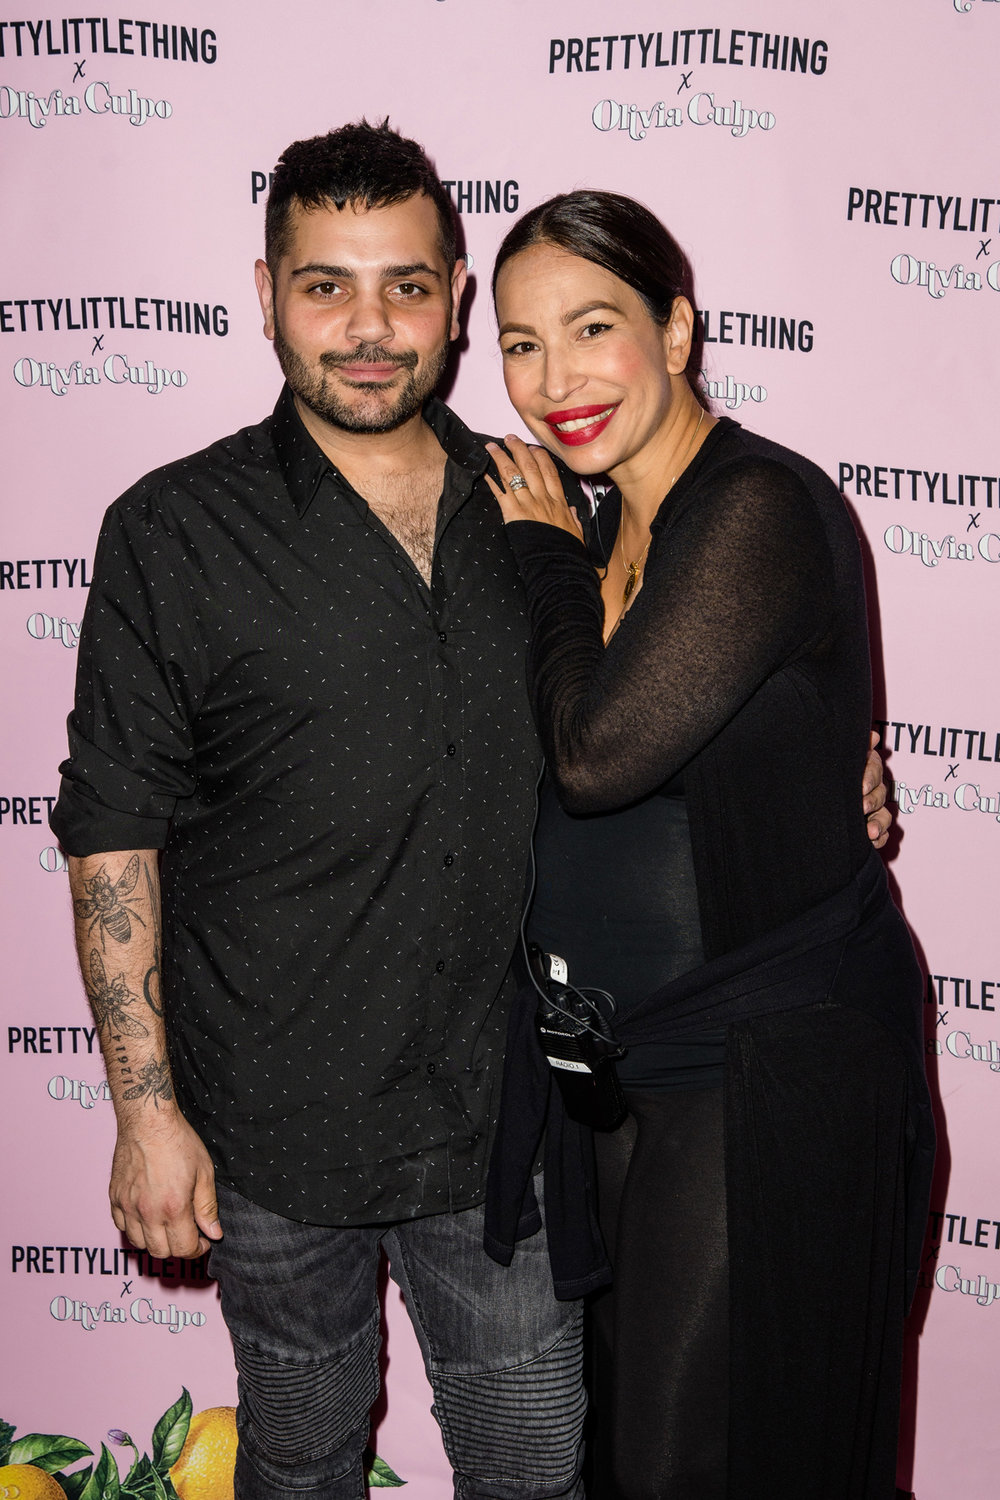 PrettyLittleThing PLT X Olivia Culpo Collection  Celebrity Launch Party Michael Costello and Loriann Serna.jpg